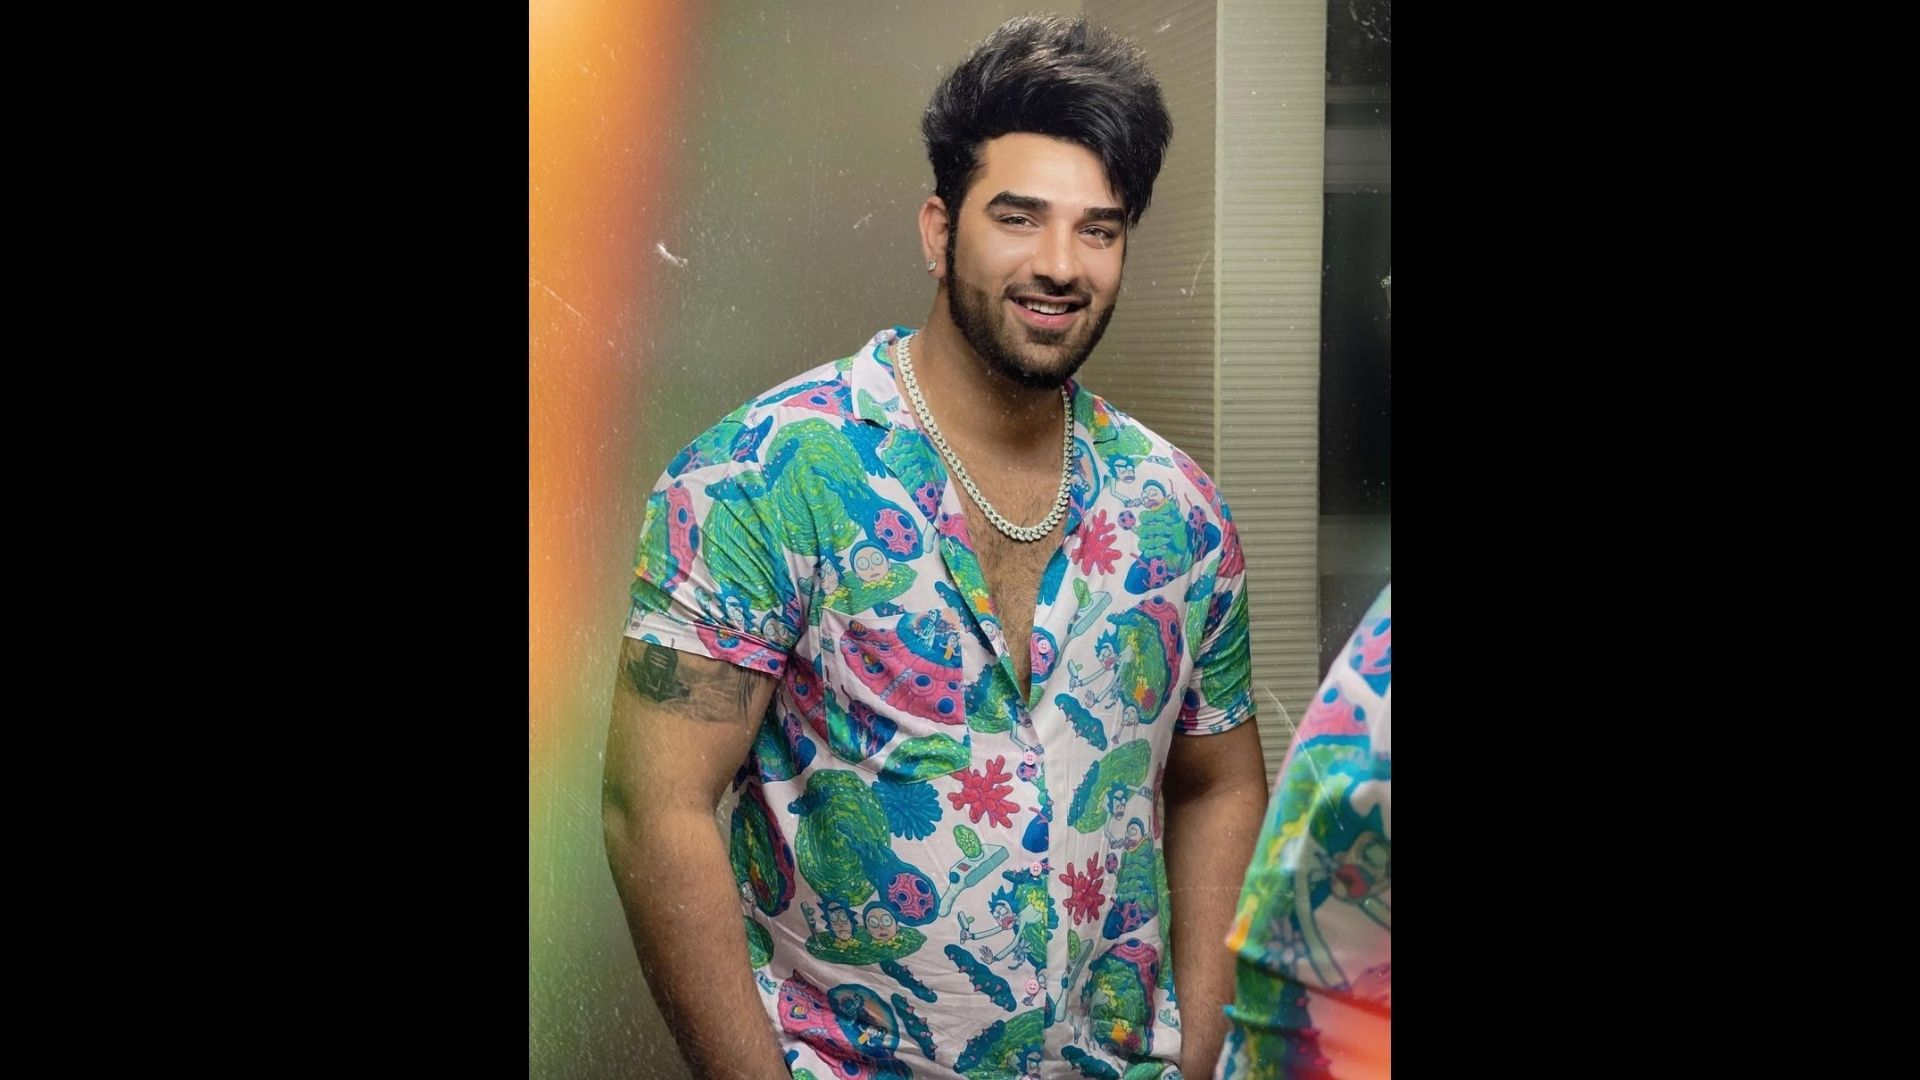 Ex-Bigg Boss Contestant Paras Chhabra Reveals Taking Anti-Anxiety Pills; Talks About How He Felt On The Morning Of Sidharth Shukla's Death